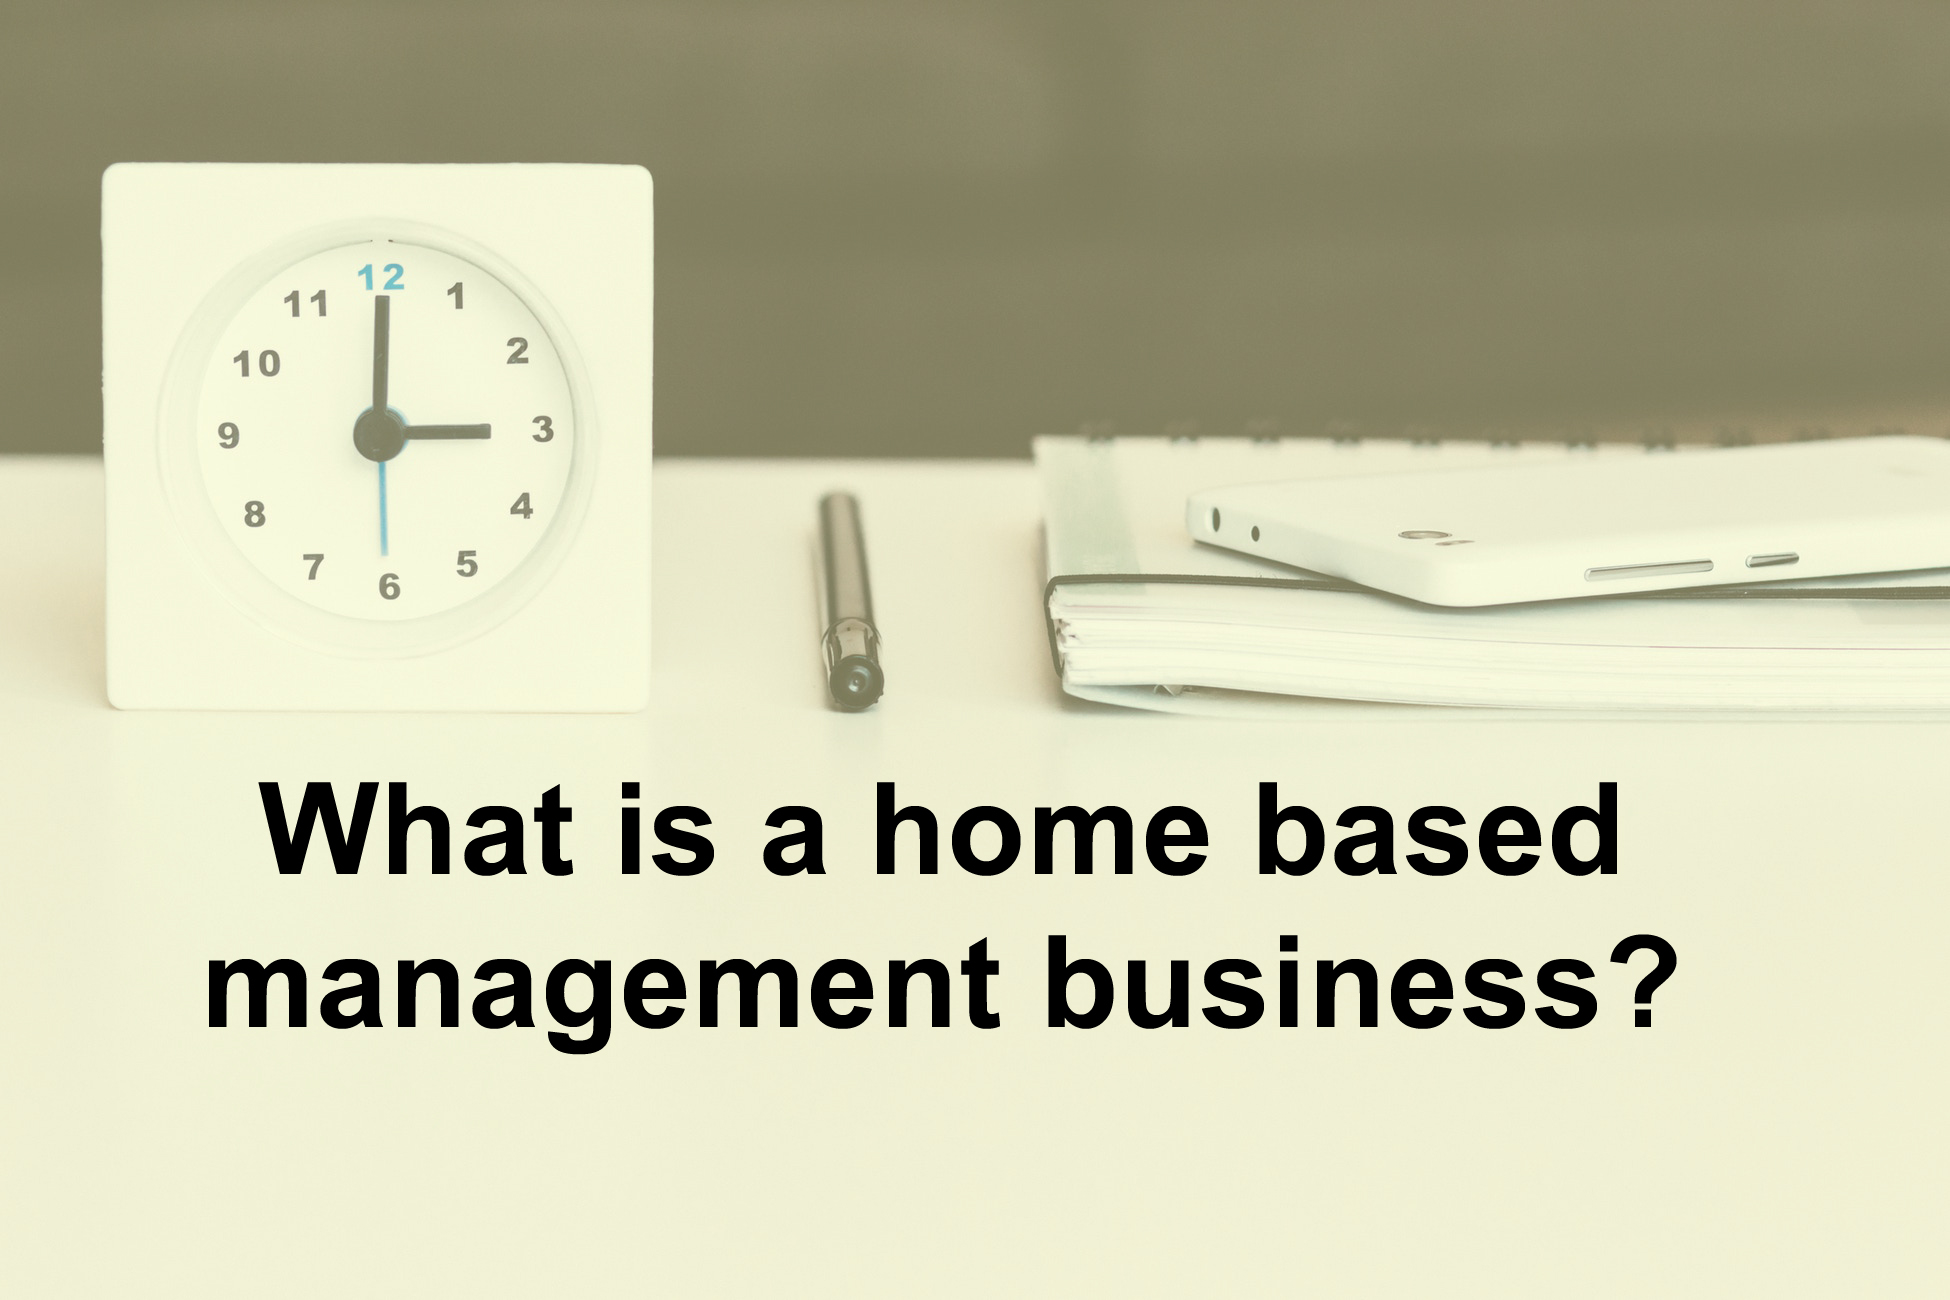 What is a home based management business?